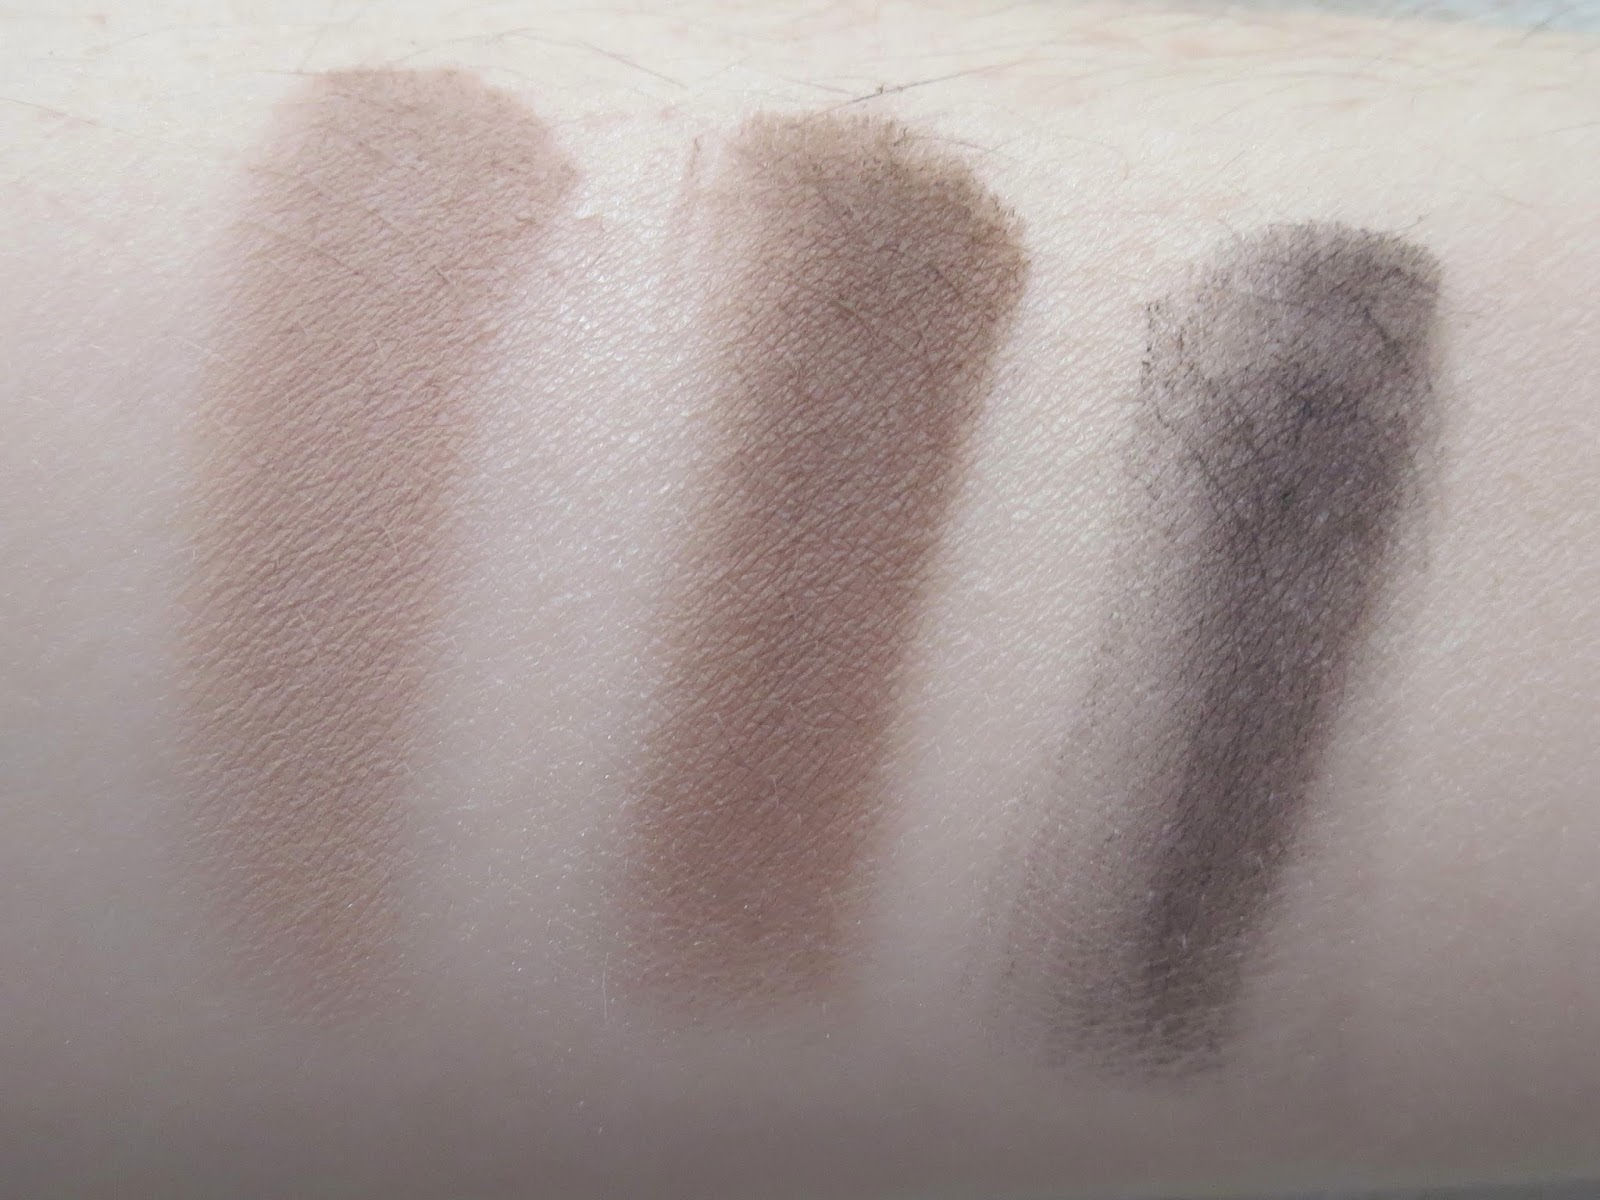 a picture of Urban Decay Naked Basics Palette ; Naked 2, Faint, Crave (swatch)